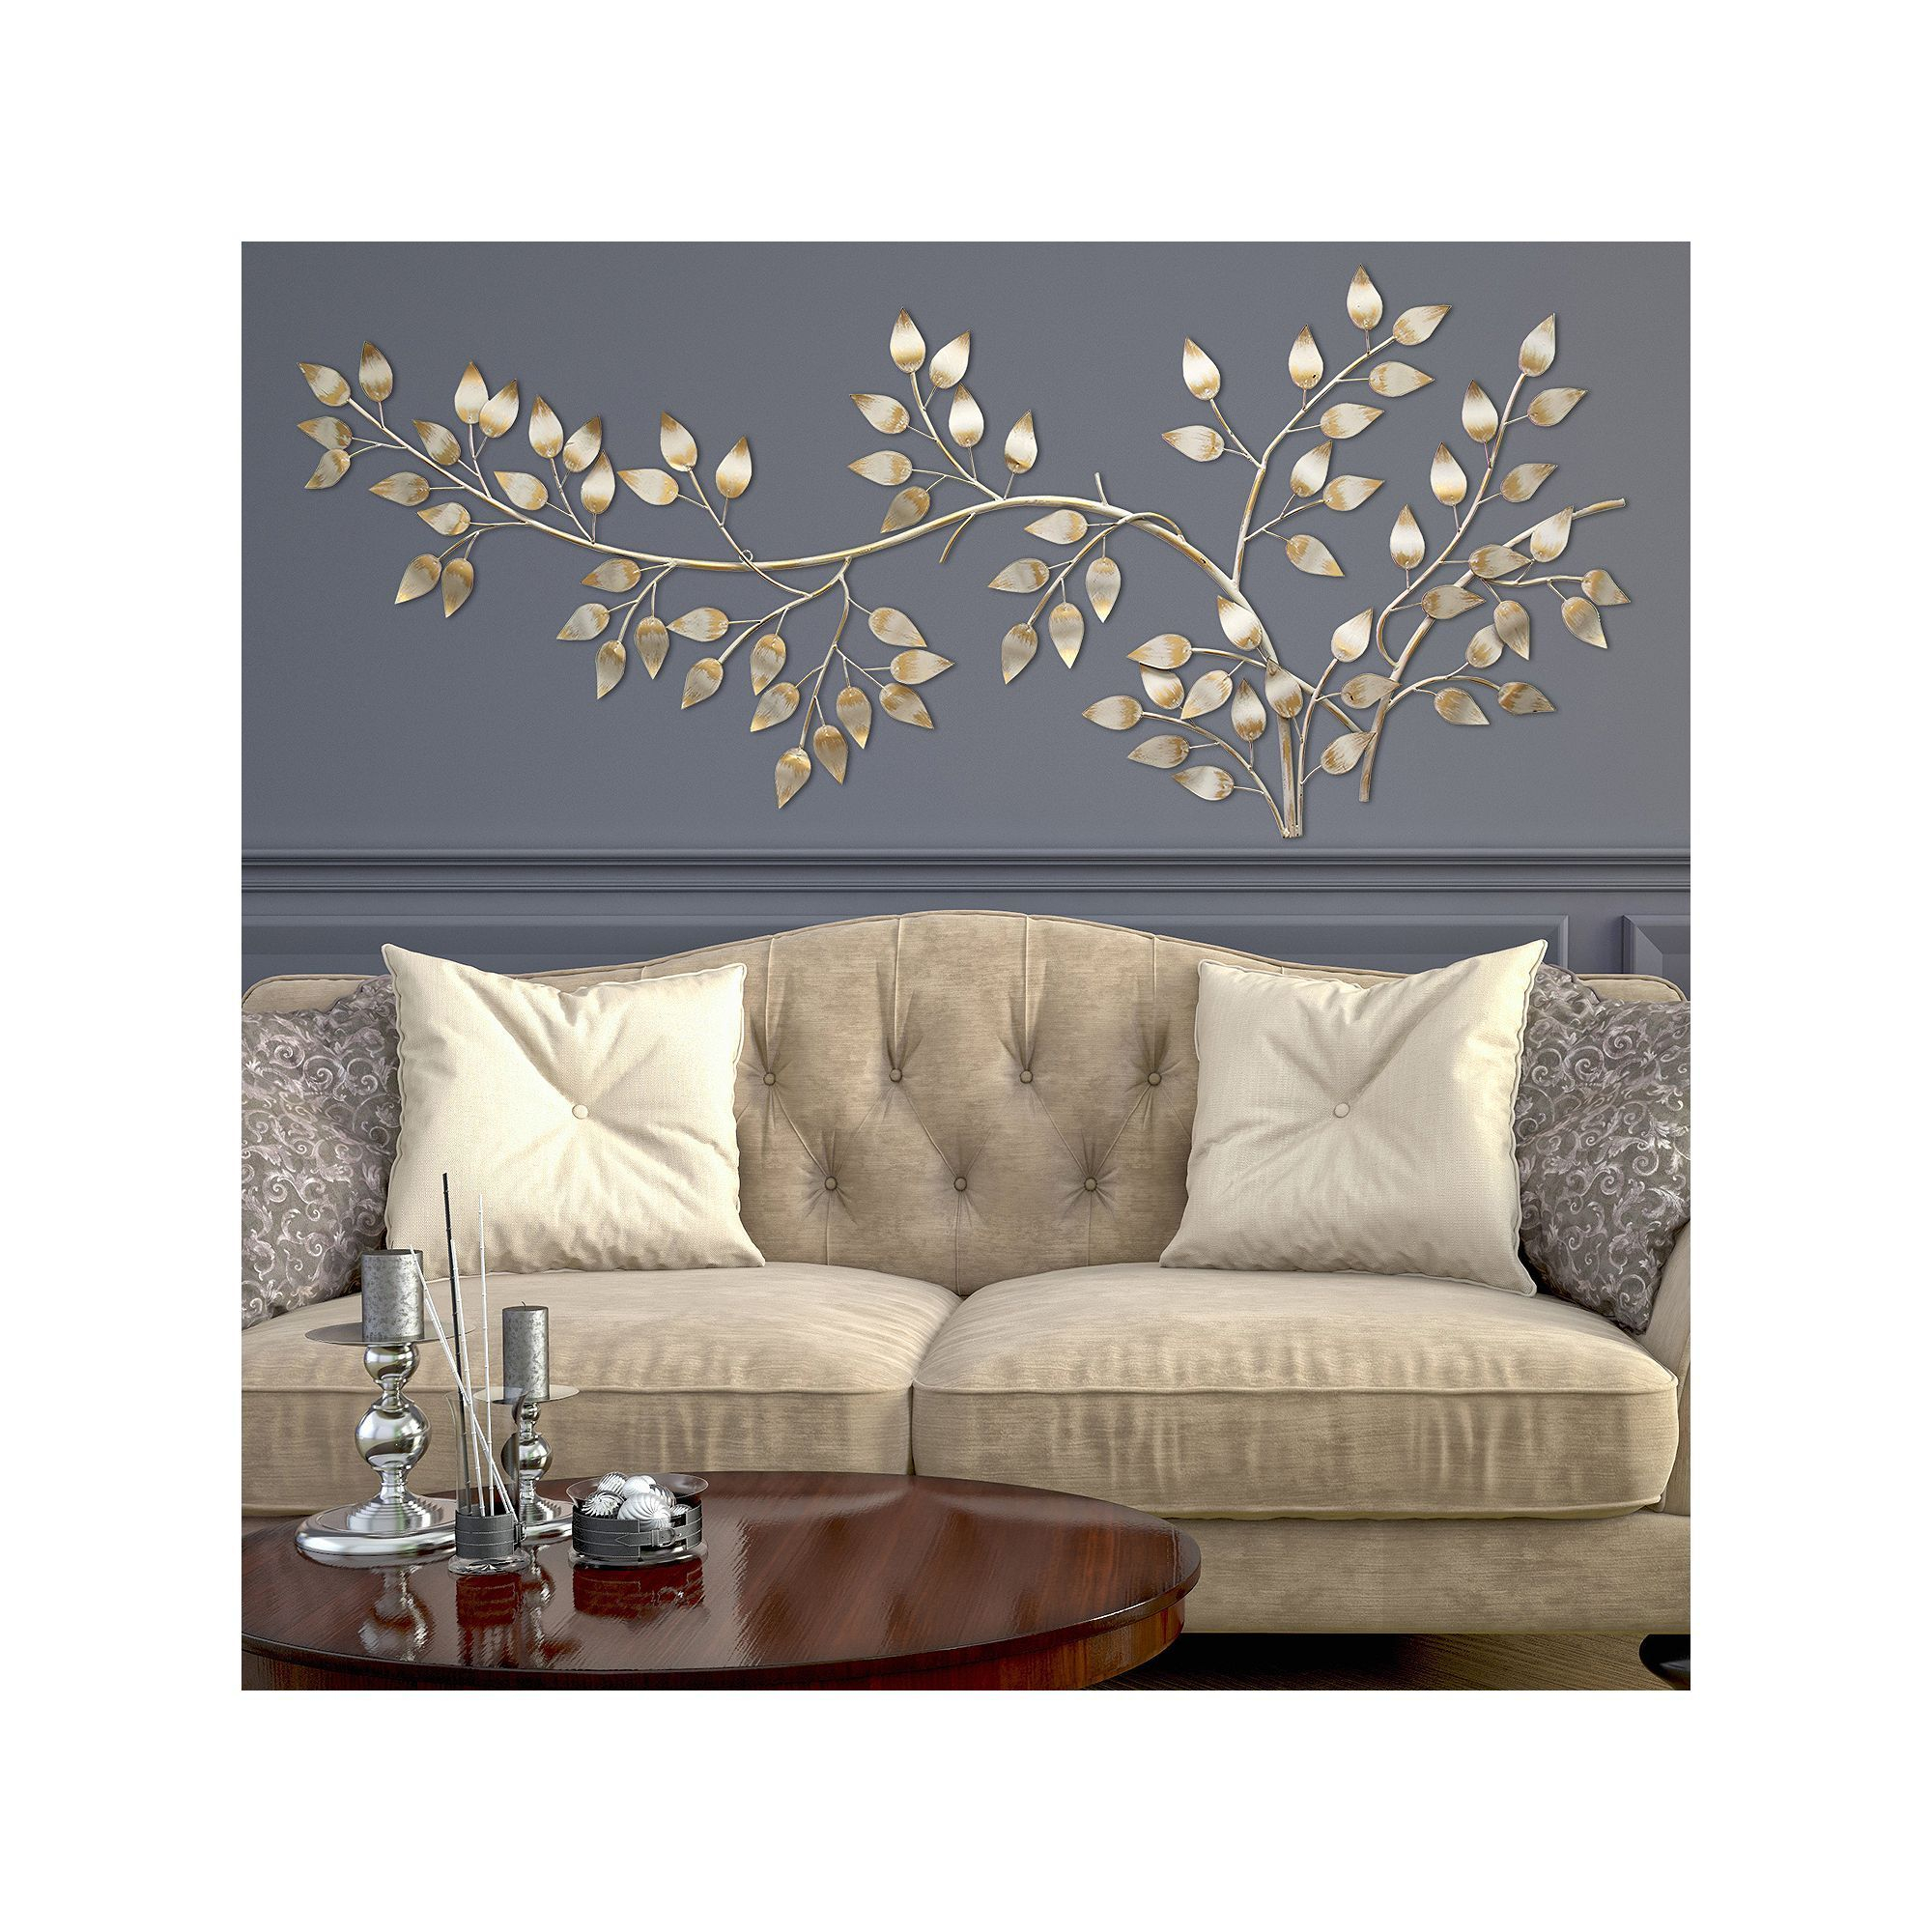 Stratton Home Decor Flowing Leaves Metal Wall Decor In 2019 pertaining to Flowing Leaves Wall Decor (Image 26 of 30)